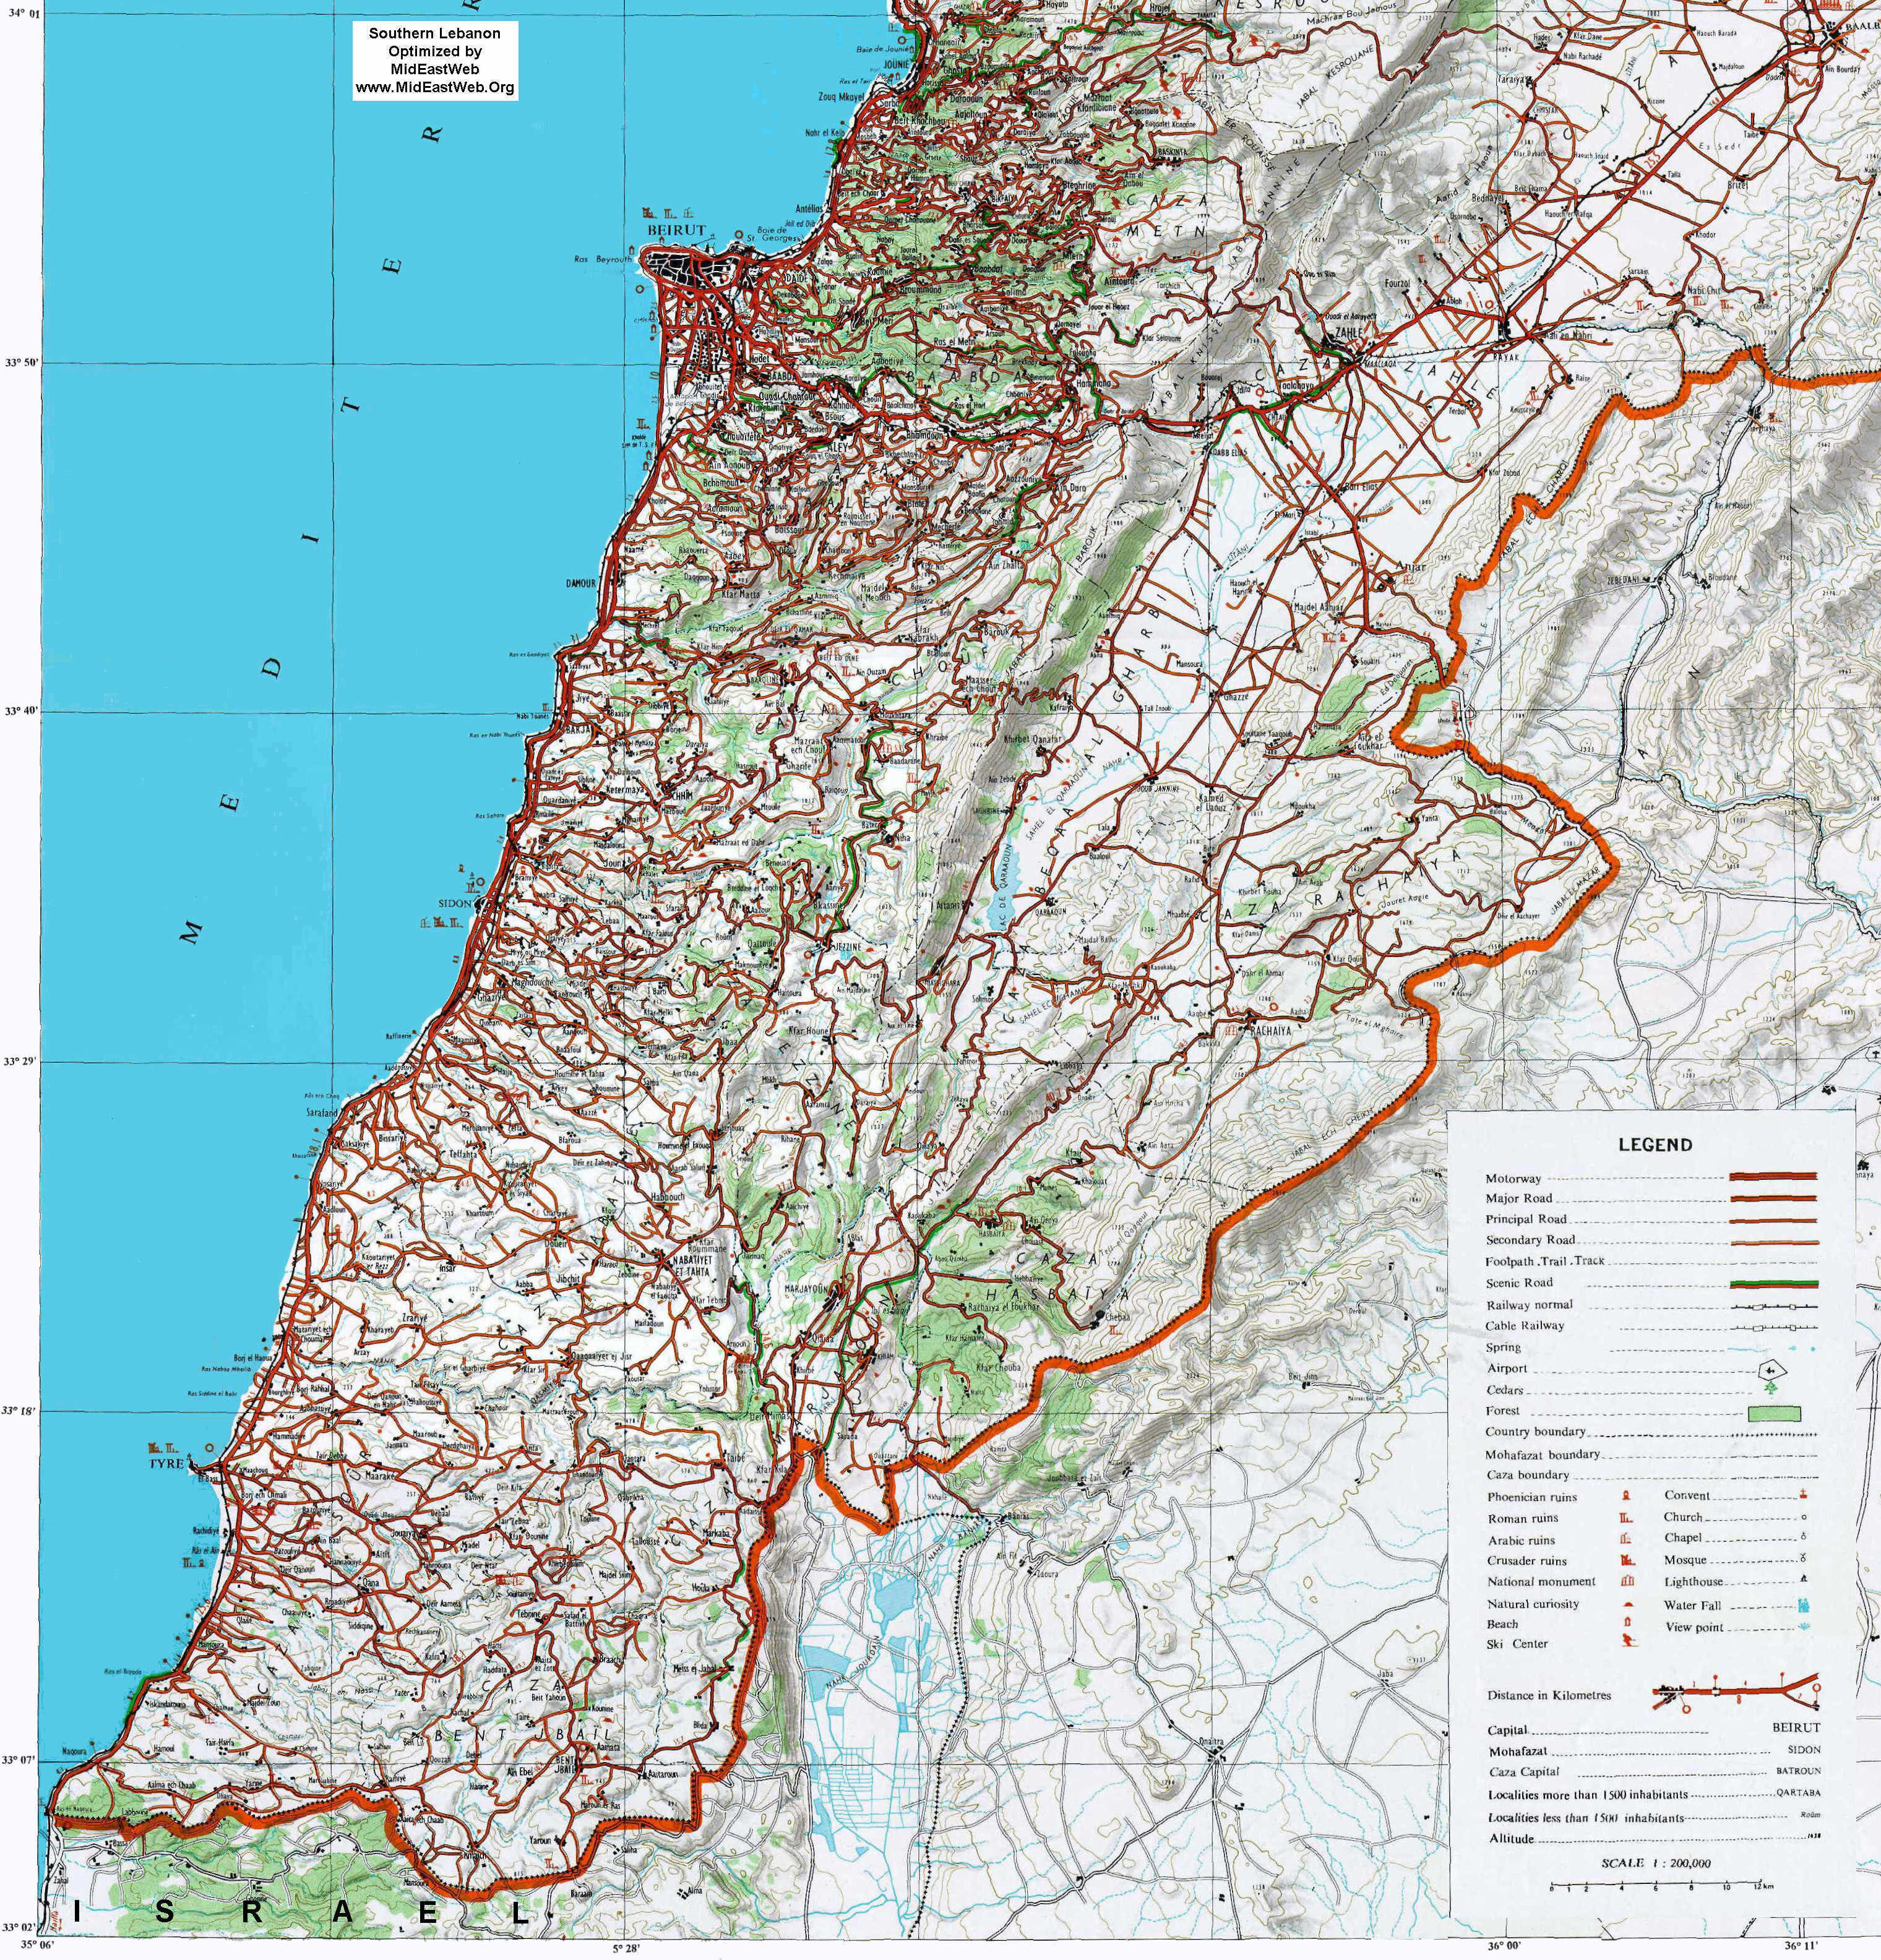 South Lebanon - Detailed optimized high resolution map